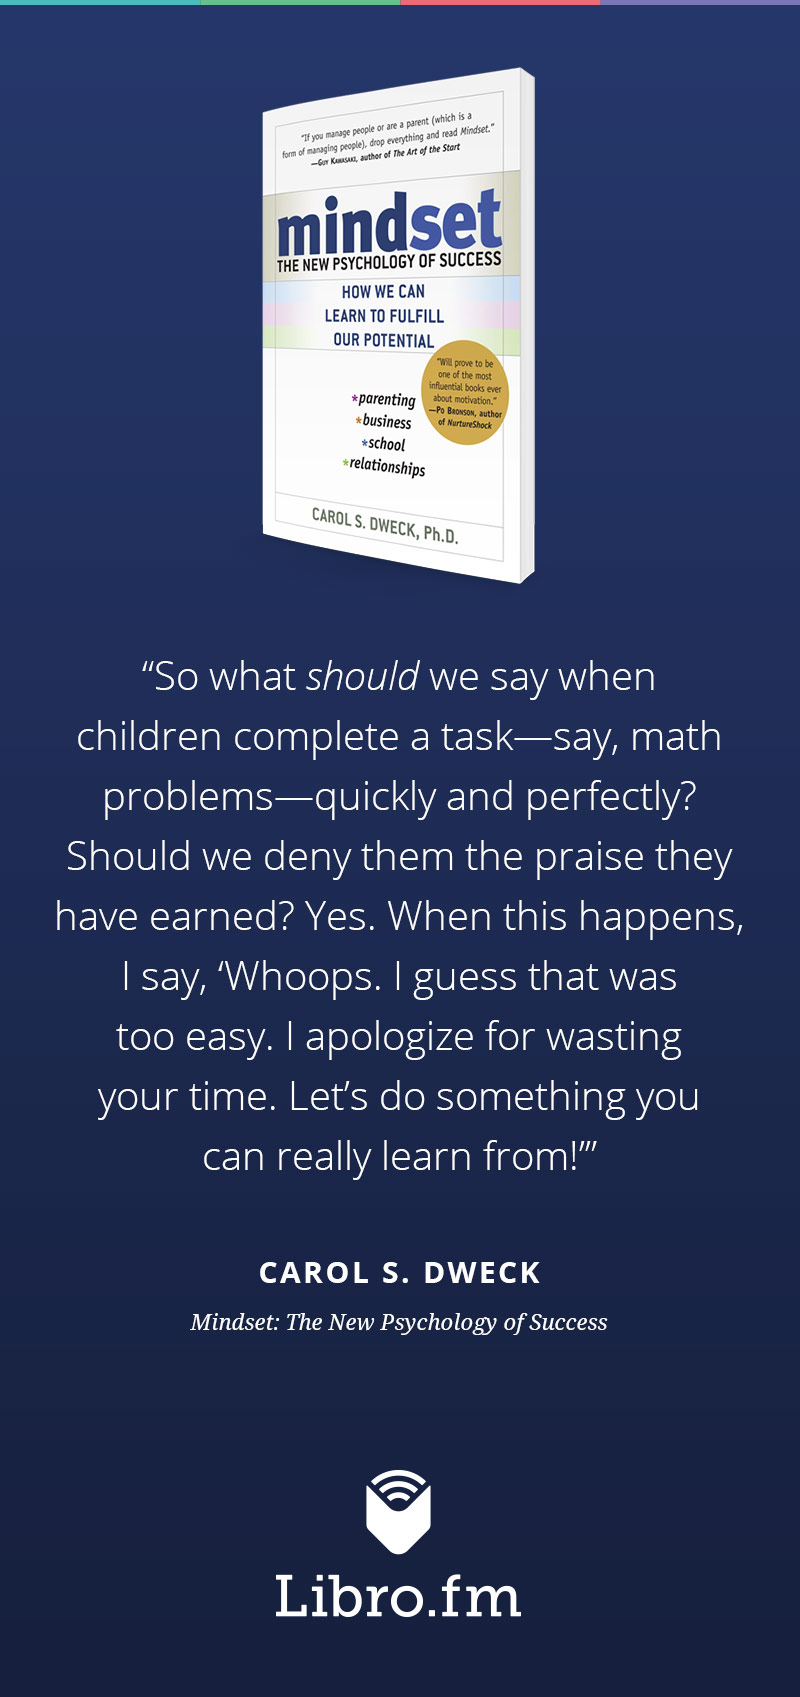 "So what <em>should</em> we say when children complete a task—say, math problems—quickly and perfectly? Should we deny them the praise they have earned? Yes. When this happens, I say, ""Whoops. I guess that was too easy. I apologize for wasting your time. Let's do something you can really learn from!"